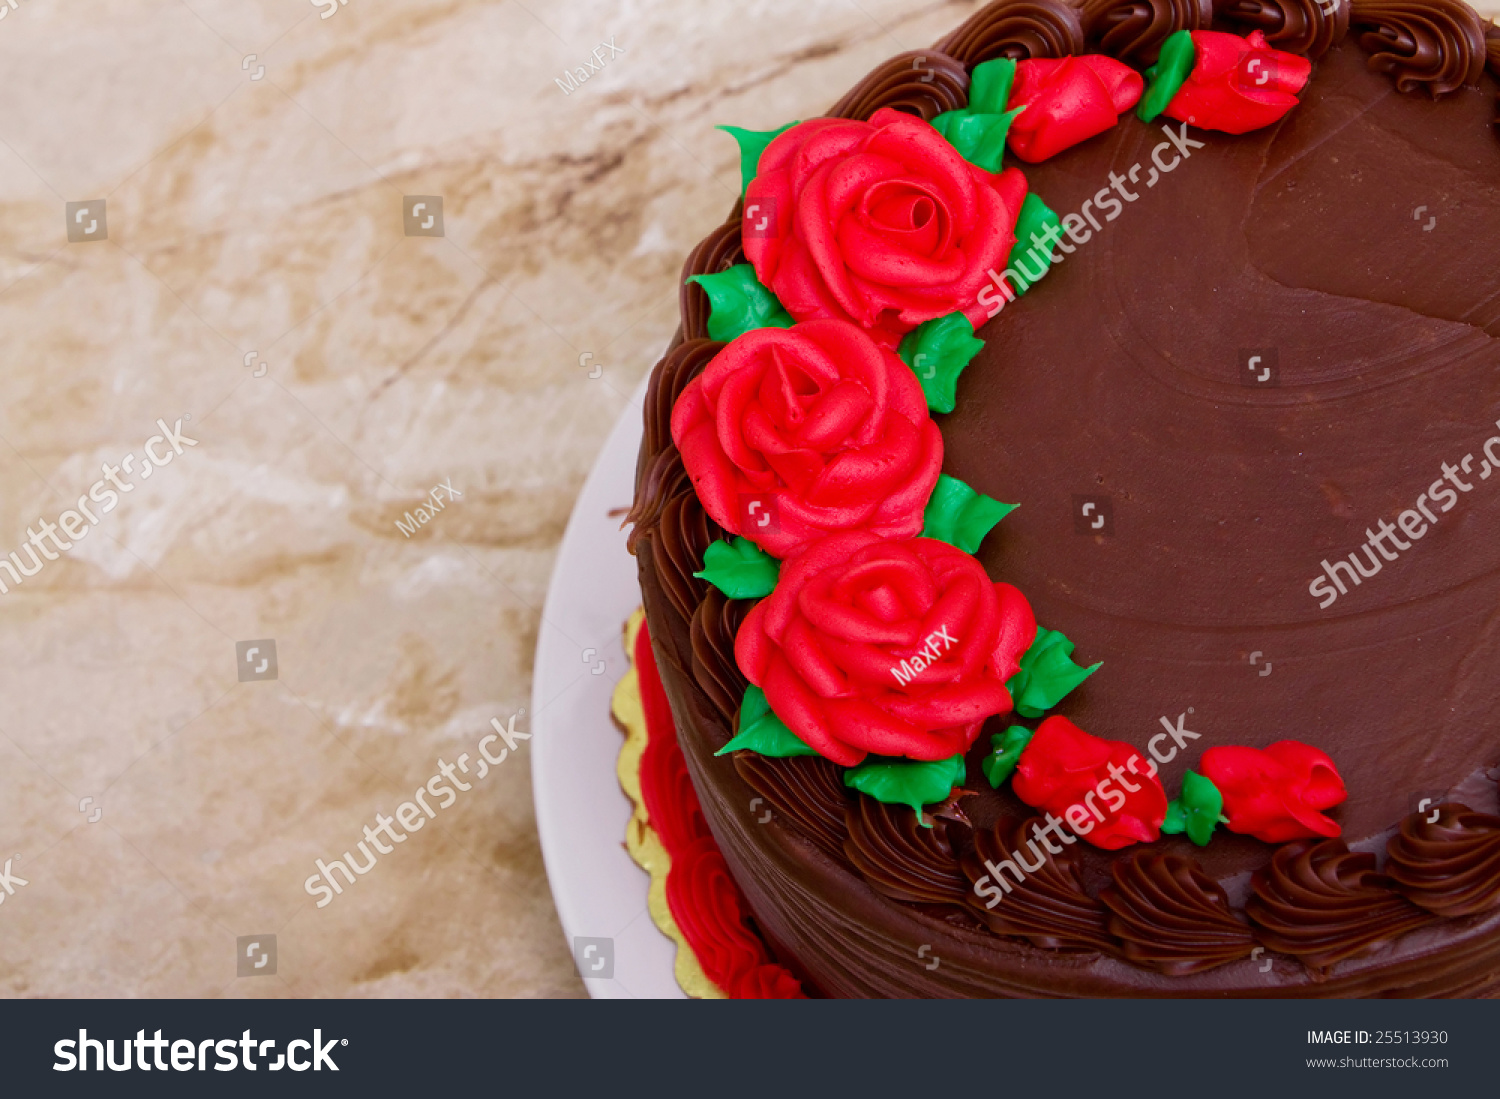 Delicious Chocolate Cake Decorated Rose Flowers Stock Photo Edit